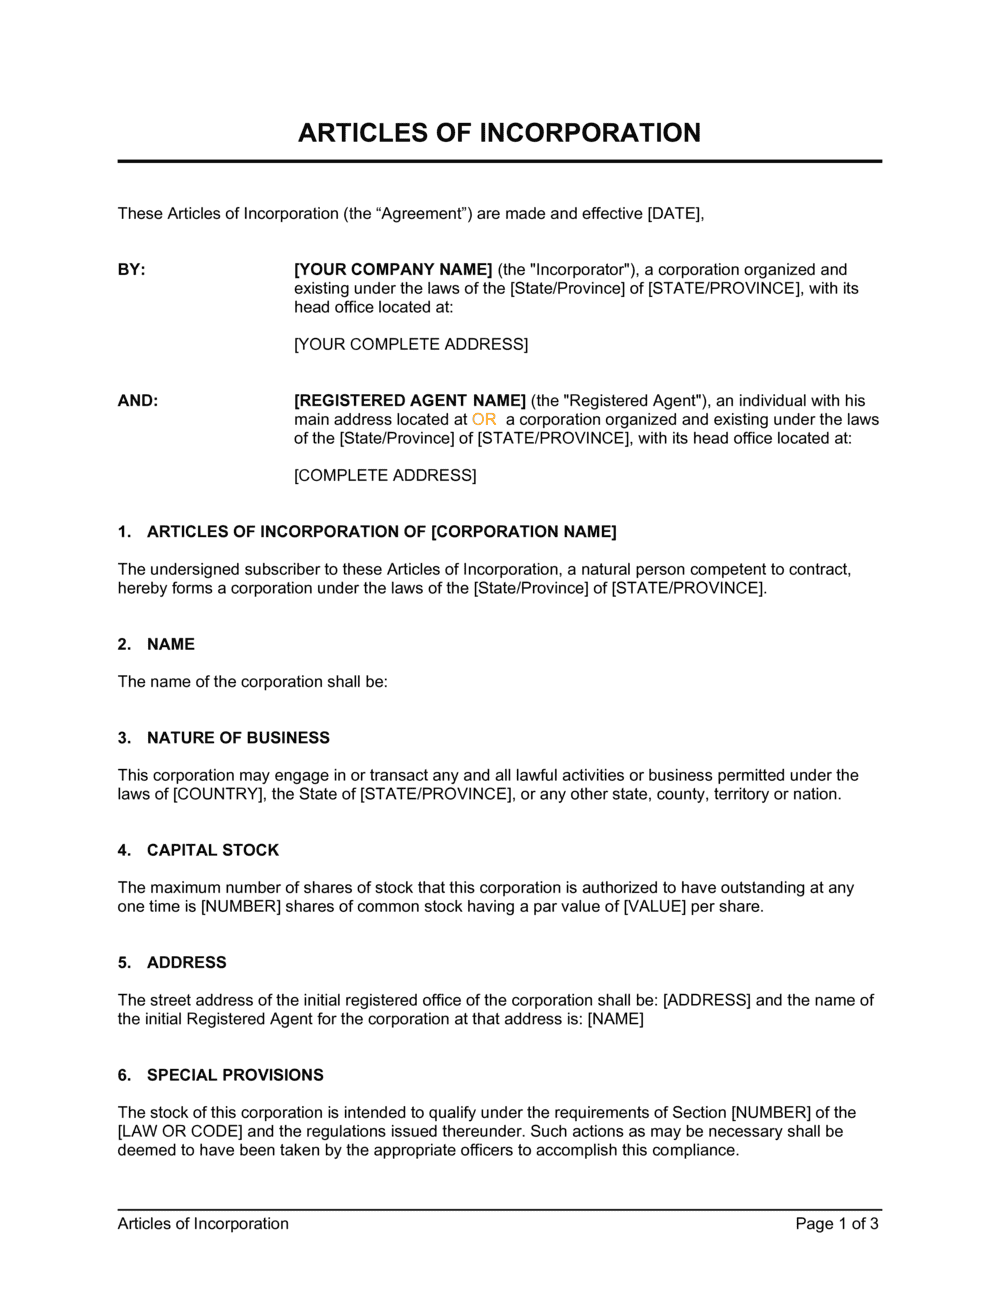 Business-in-a-Box's Articles of Incorporation Template